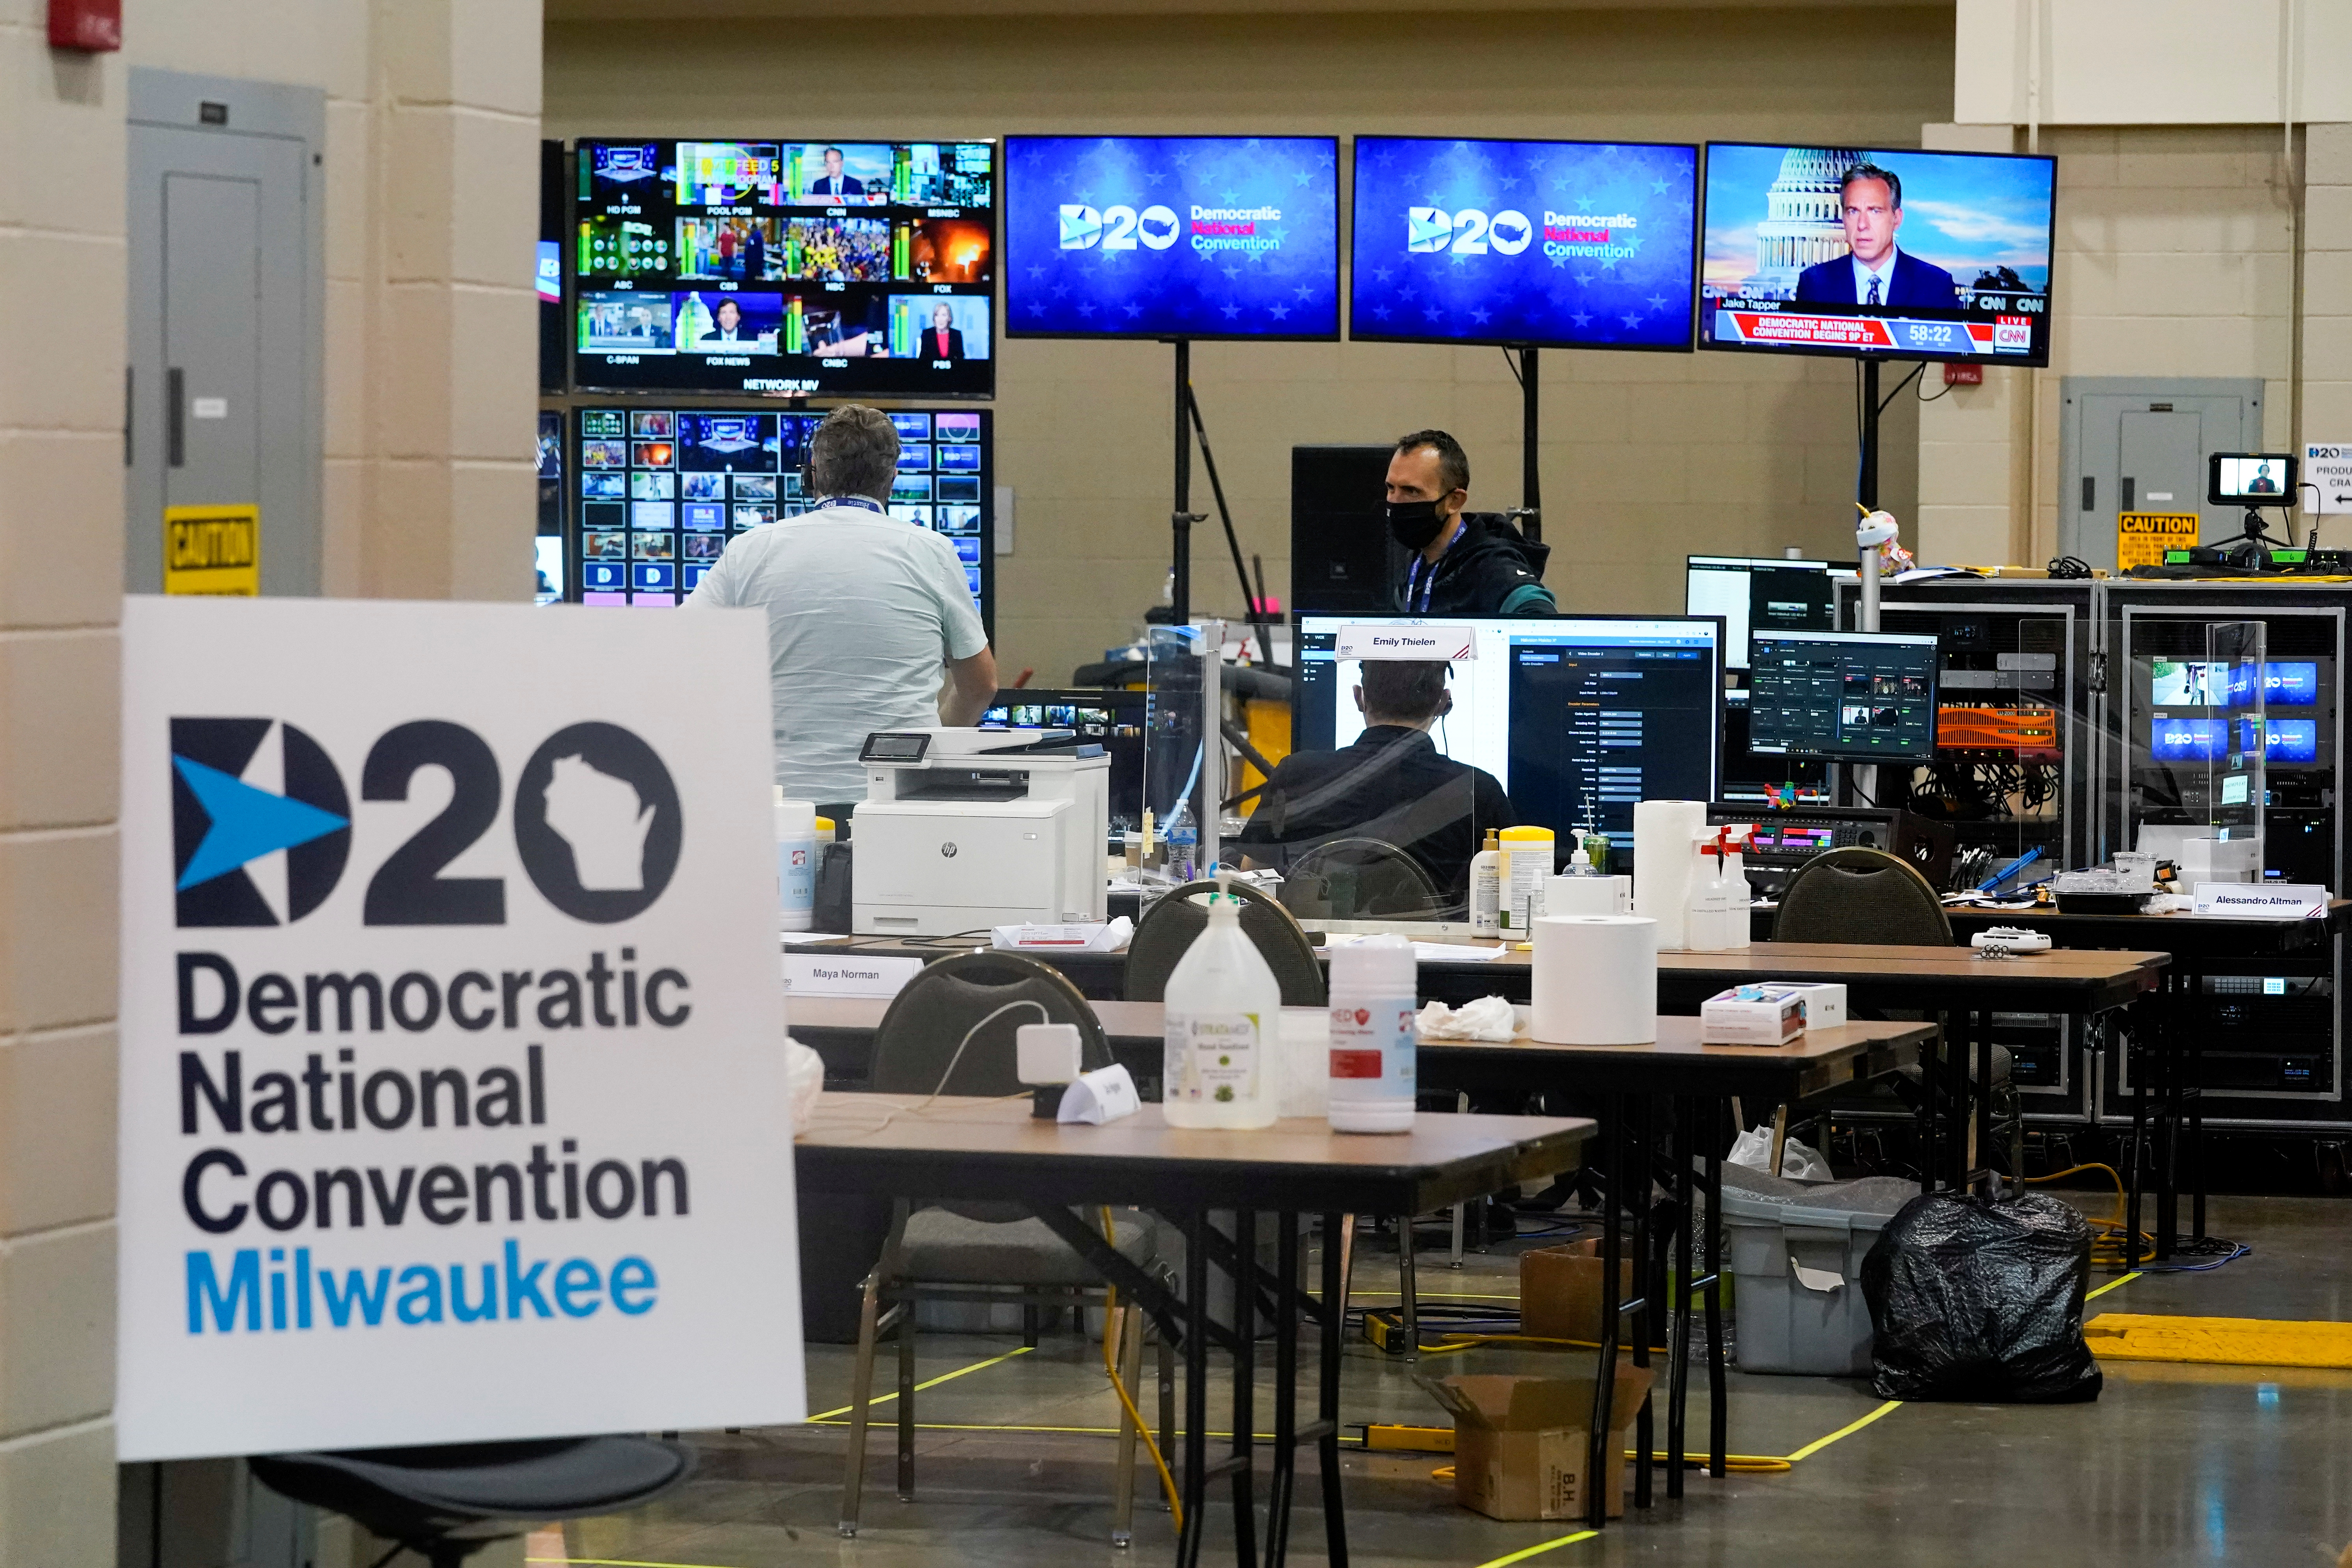 The control room for the Democratic National Convention is seen before the start of the convention, in Milwaukee, Wisconsin, U.S. August 17, 2020. Morry Gash/Pool via REUTERS - RC21GI92VNTV